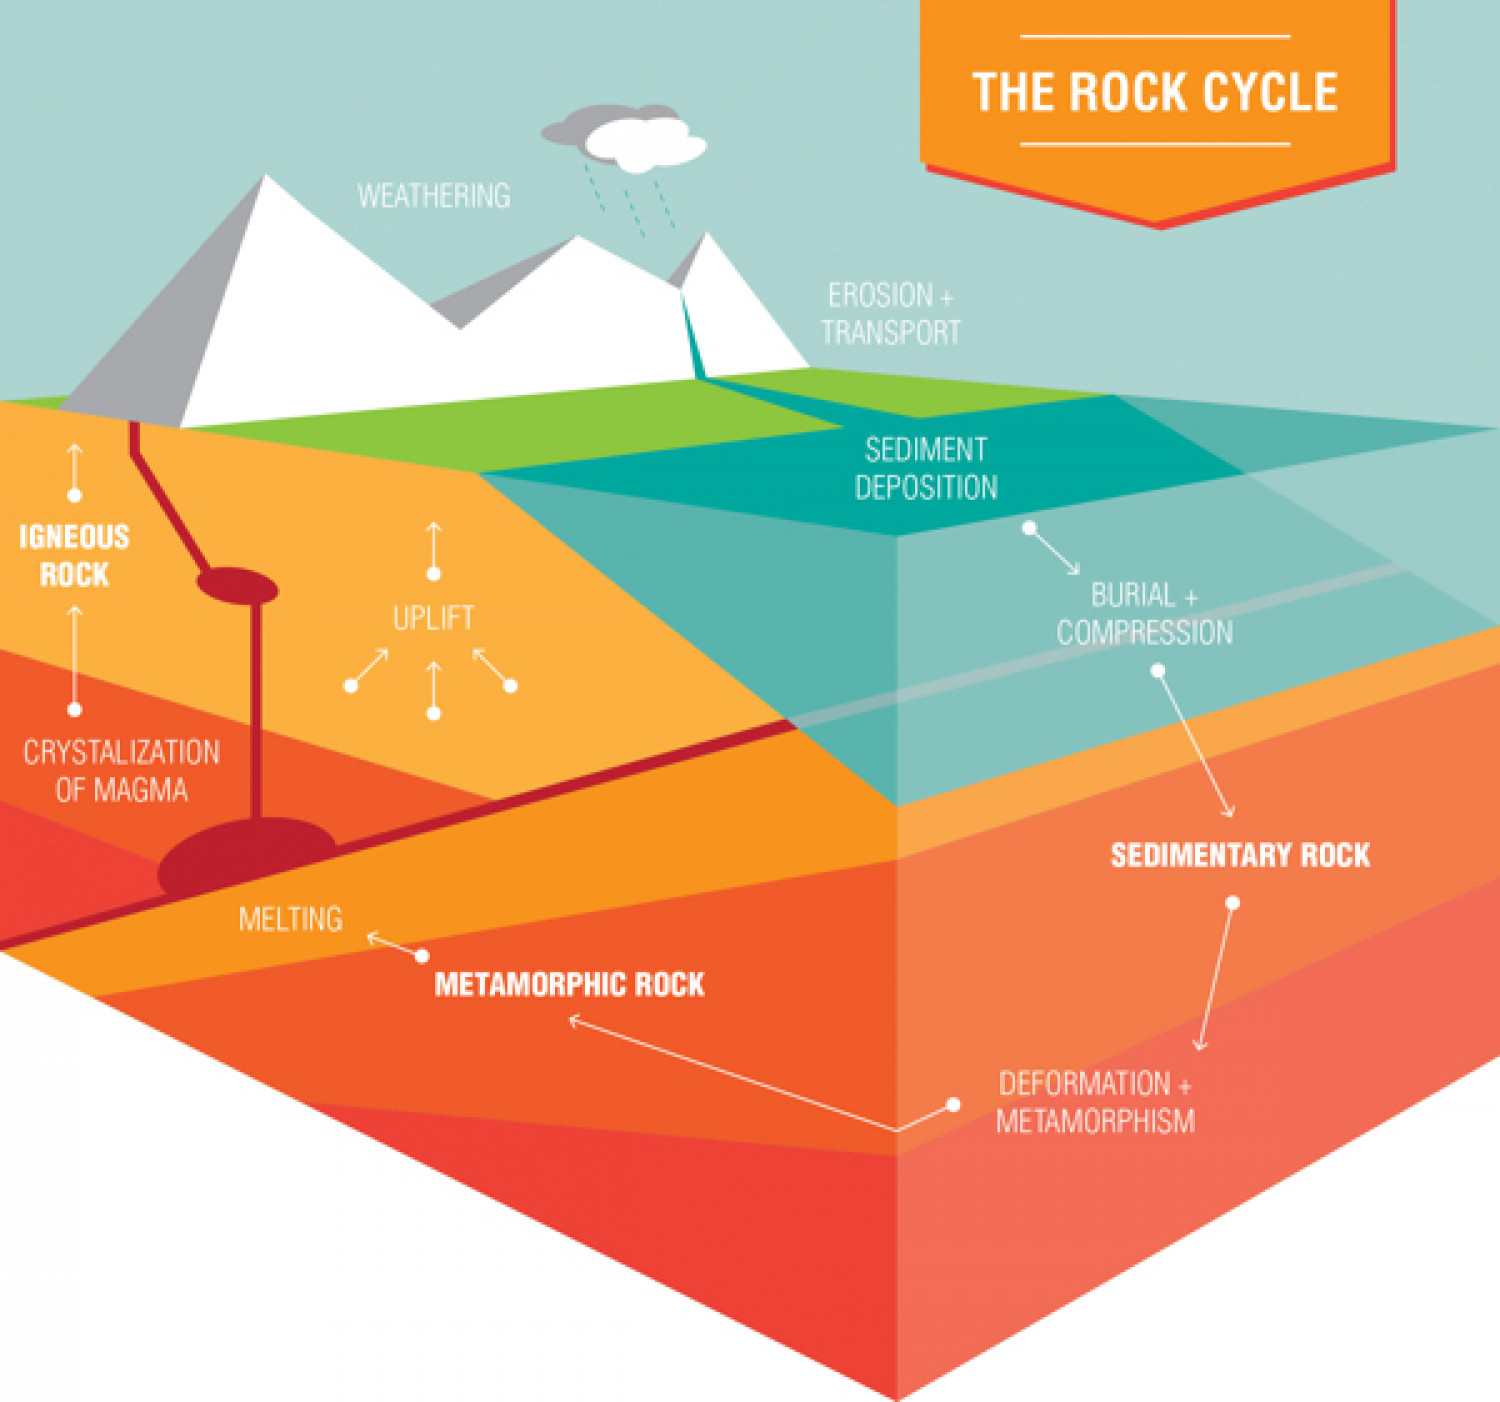 The Rock Factory: The Story About the Rock